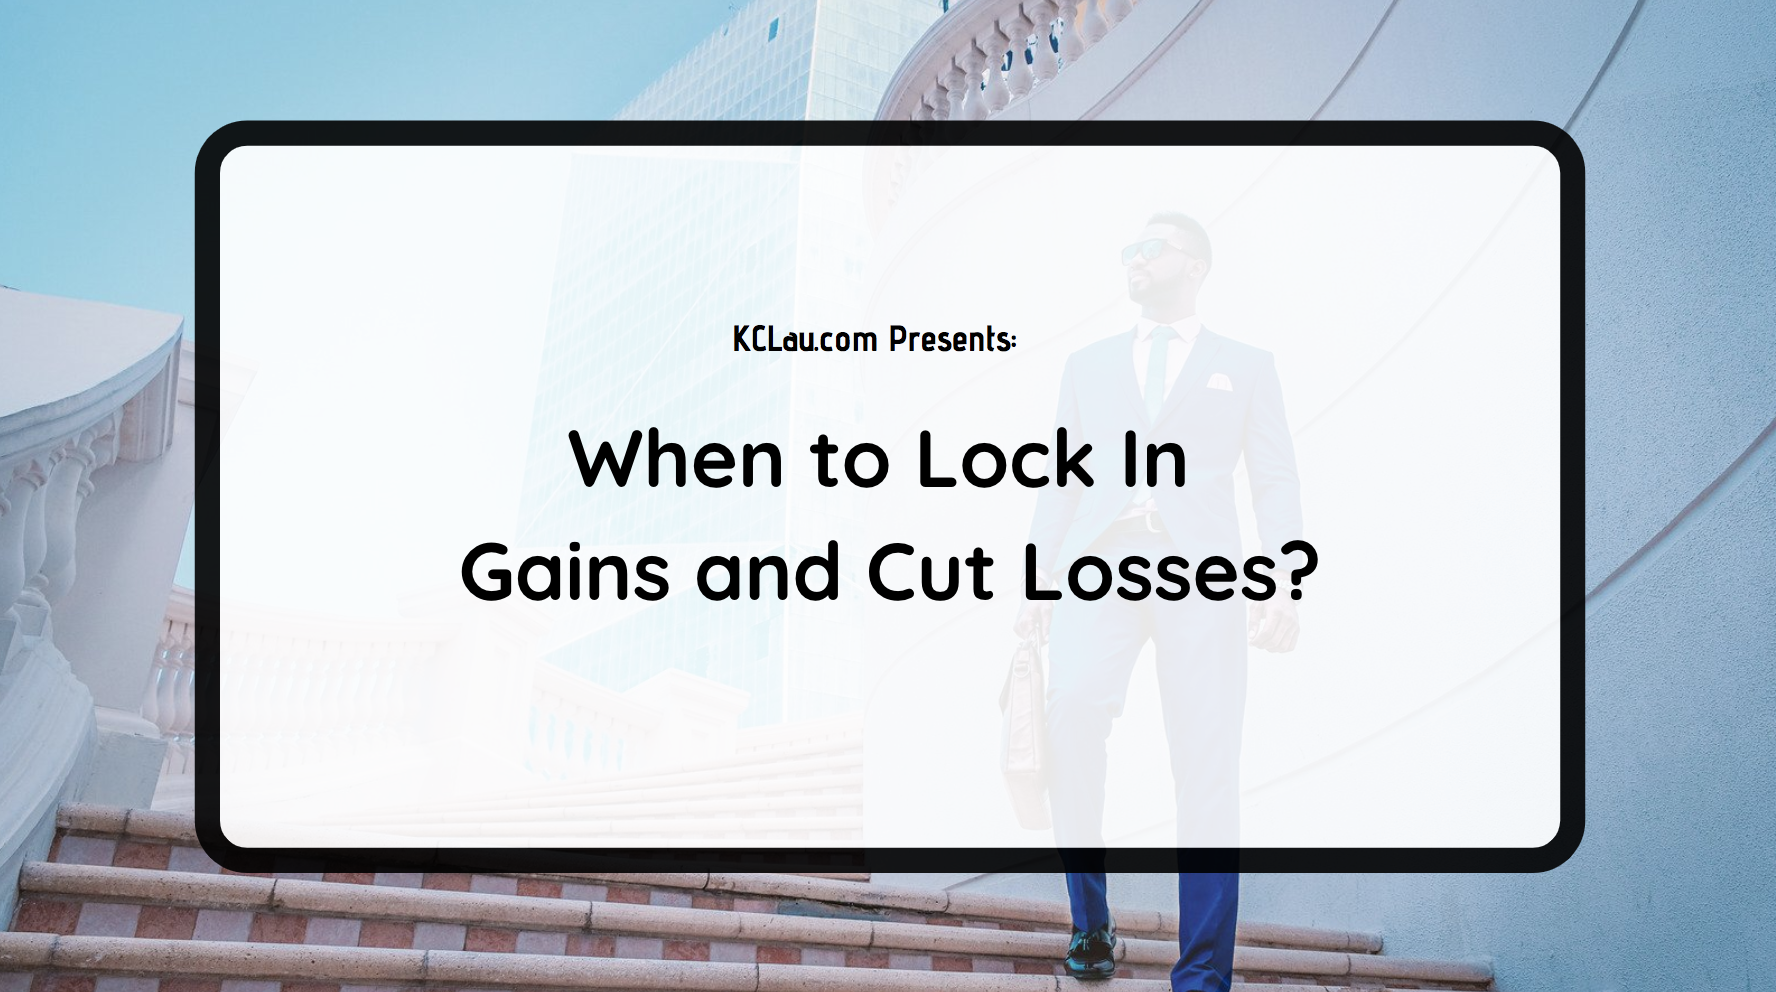 When to Lock in Gains and Cut Losses?